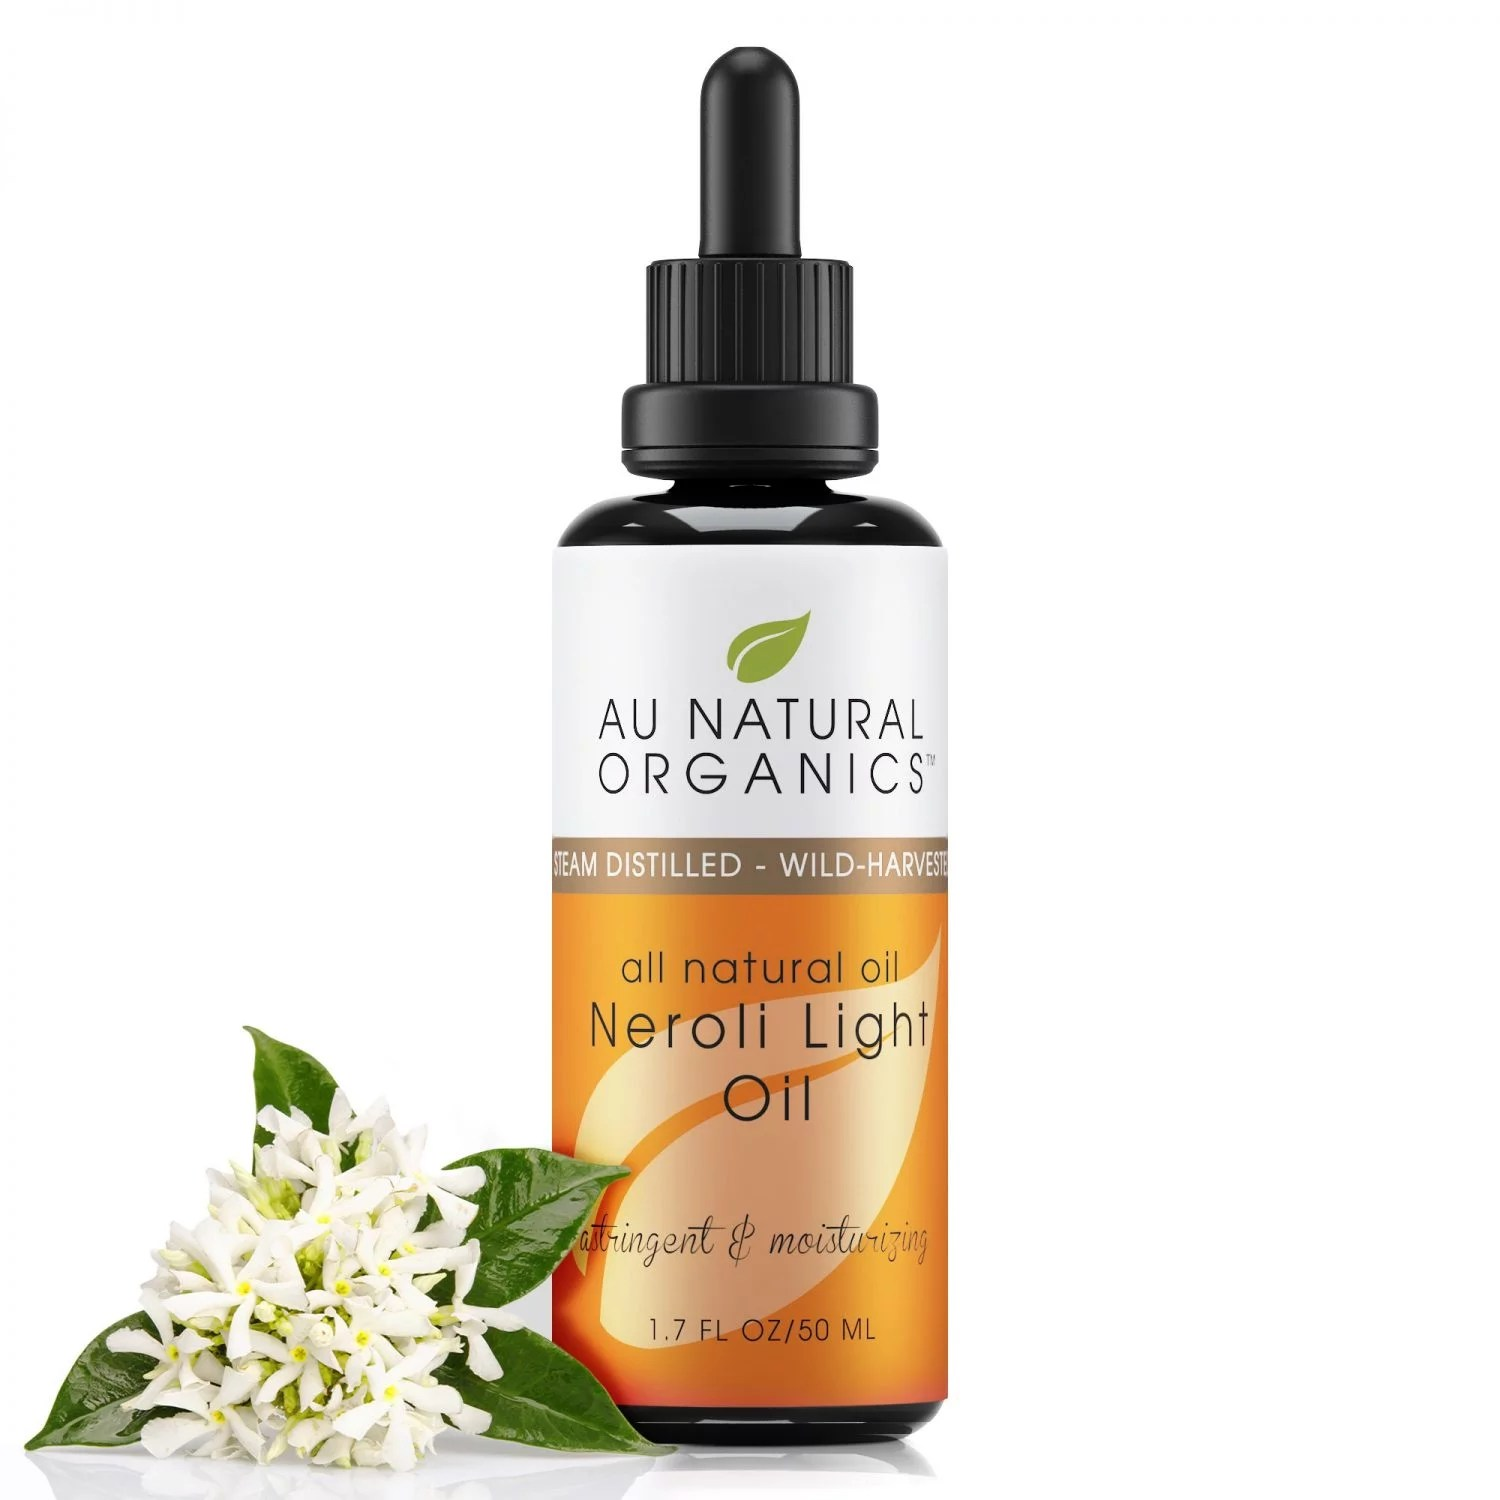 Neroli Light Oil